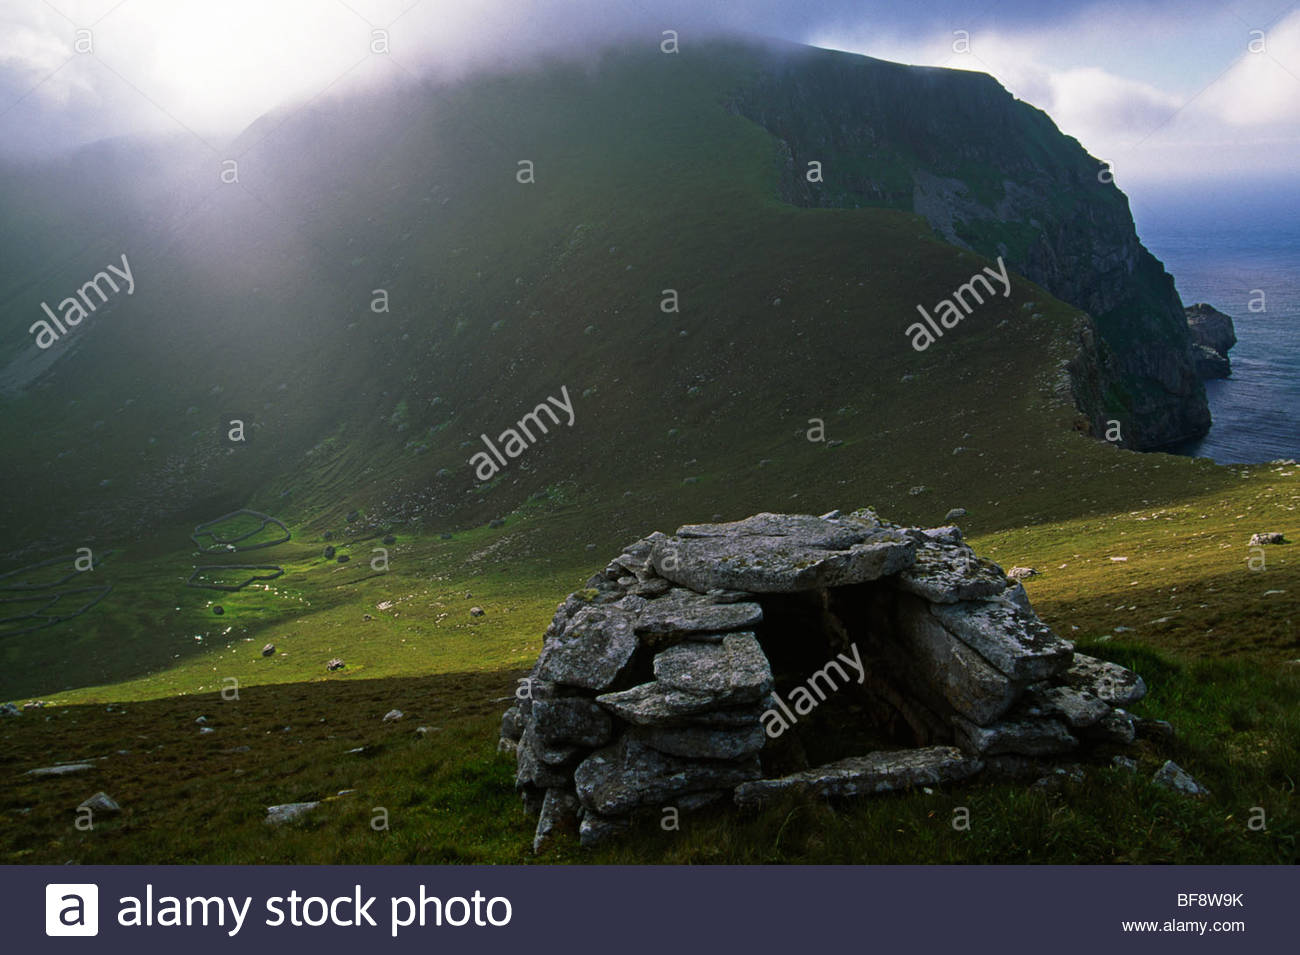 Rock shelters used prehistorically to store seabird harvests, St. Kilda, Scotland - Stock Image